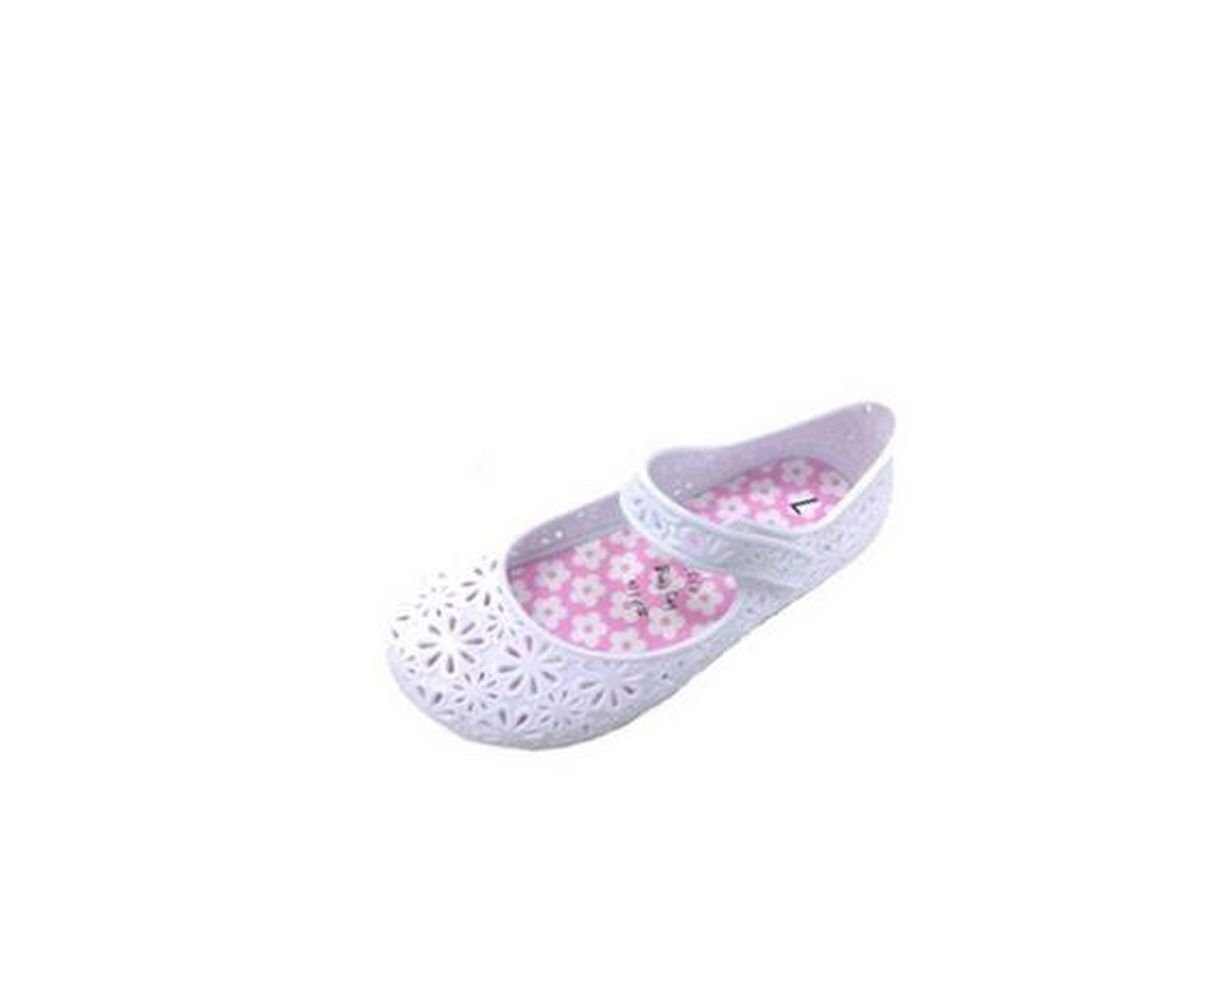 8, White Mary Jane Shoes Girls Toddler Jelly Glitter Flat Shoe Pink Purple White Colors